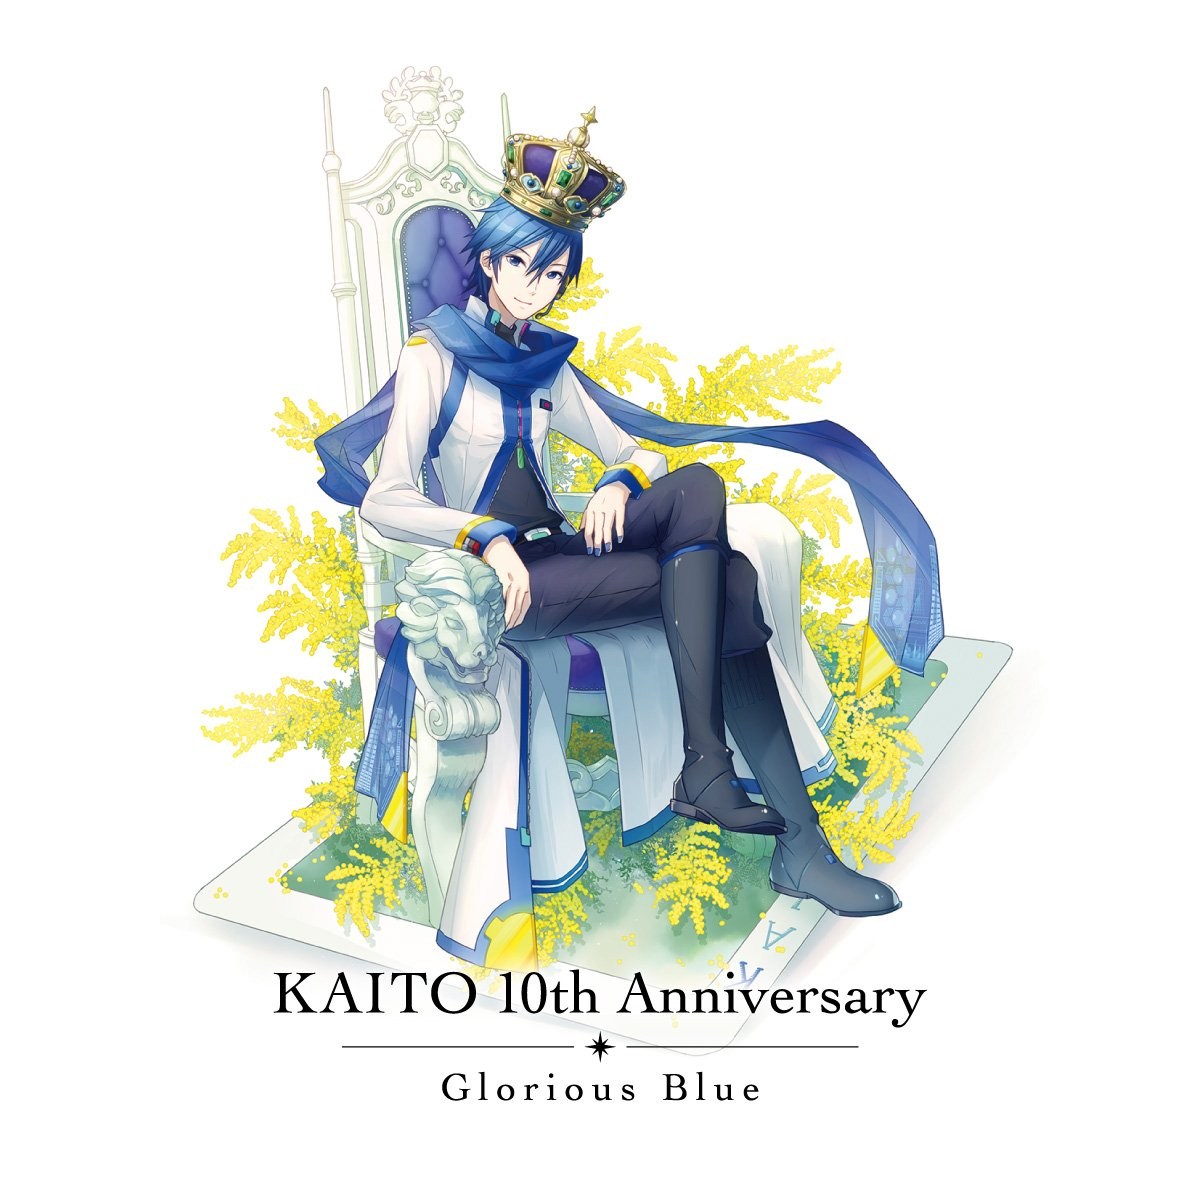 KAITO 10th Anniversary -Glorious Blue- (album)